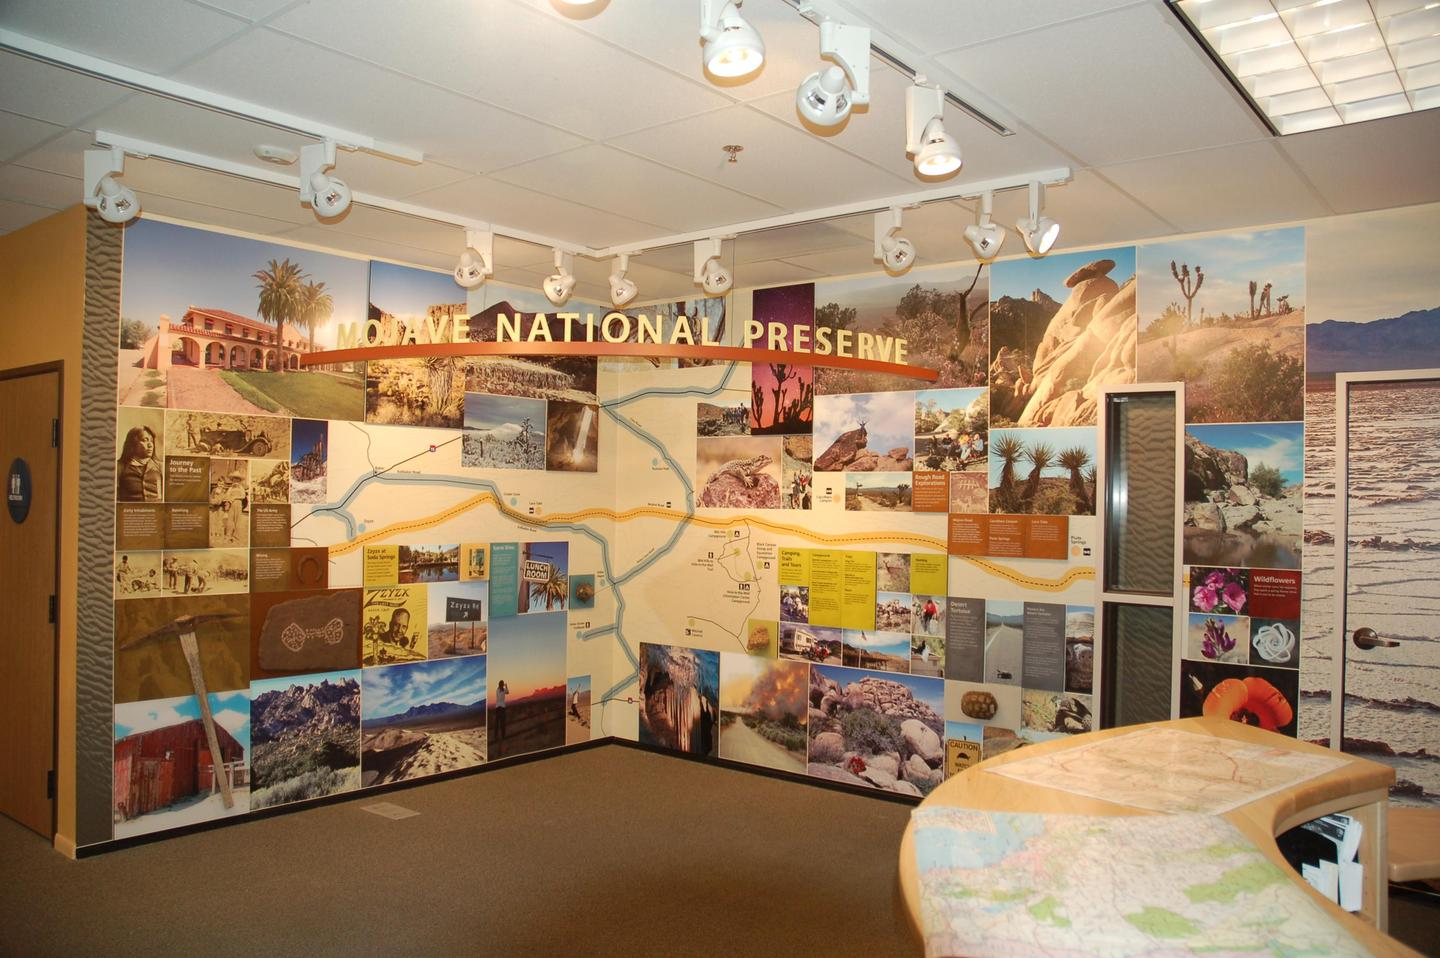 HQ exhibits insideThere are exhibits within the building to help visitors plan their trips